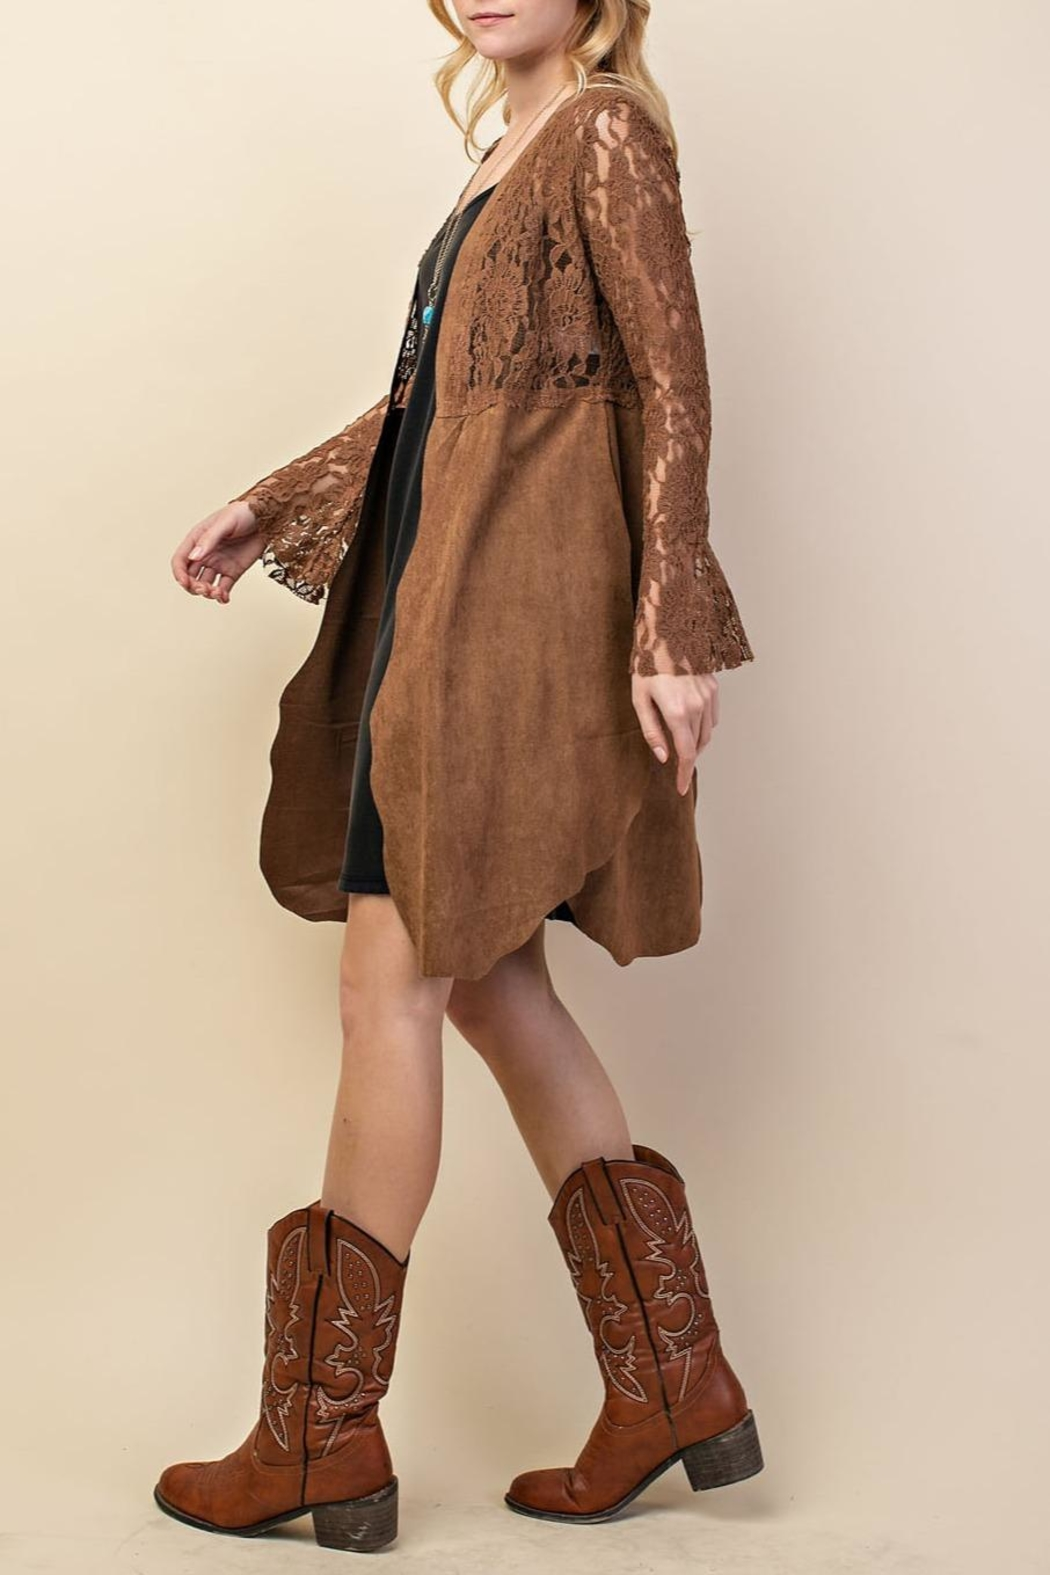 Vocal Apparel Lacey Suede Duster - Side Cropped Image